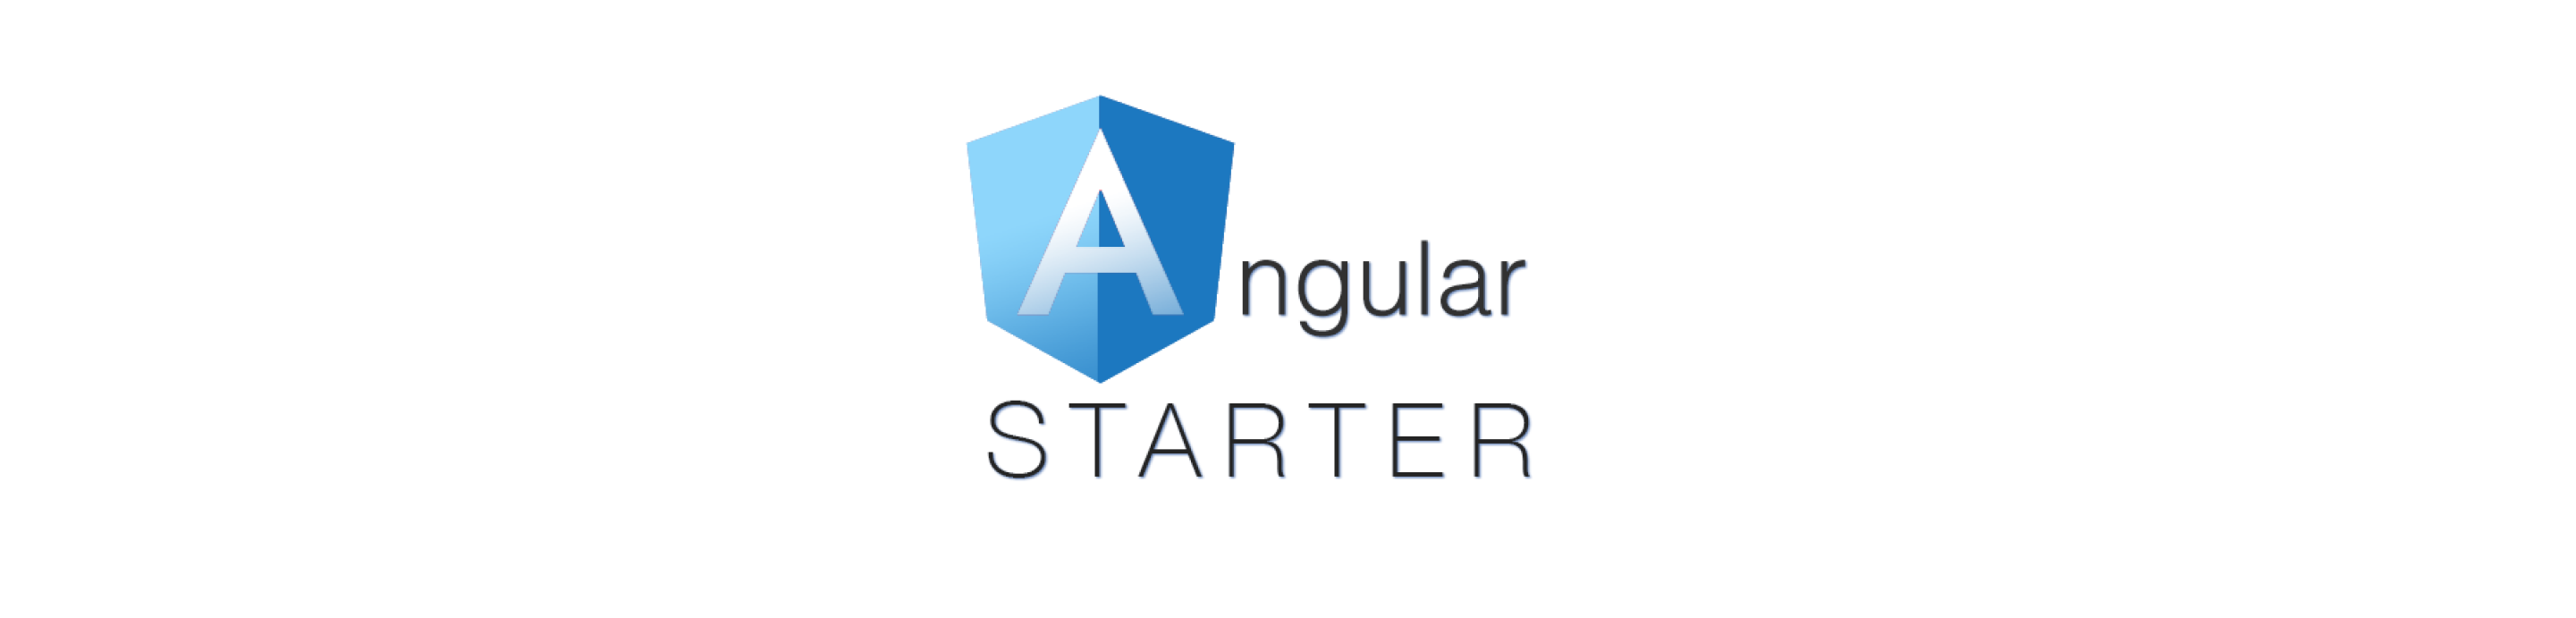 Top 18 most popular Angular open-source projects in 2021